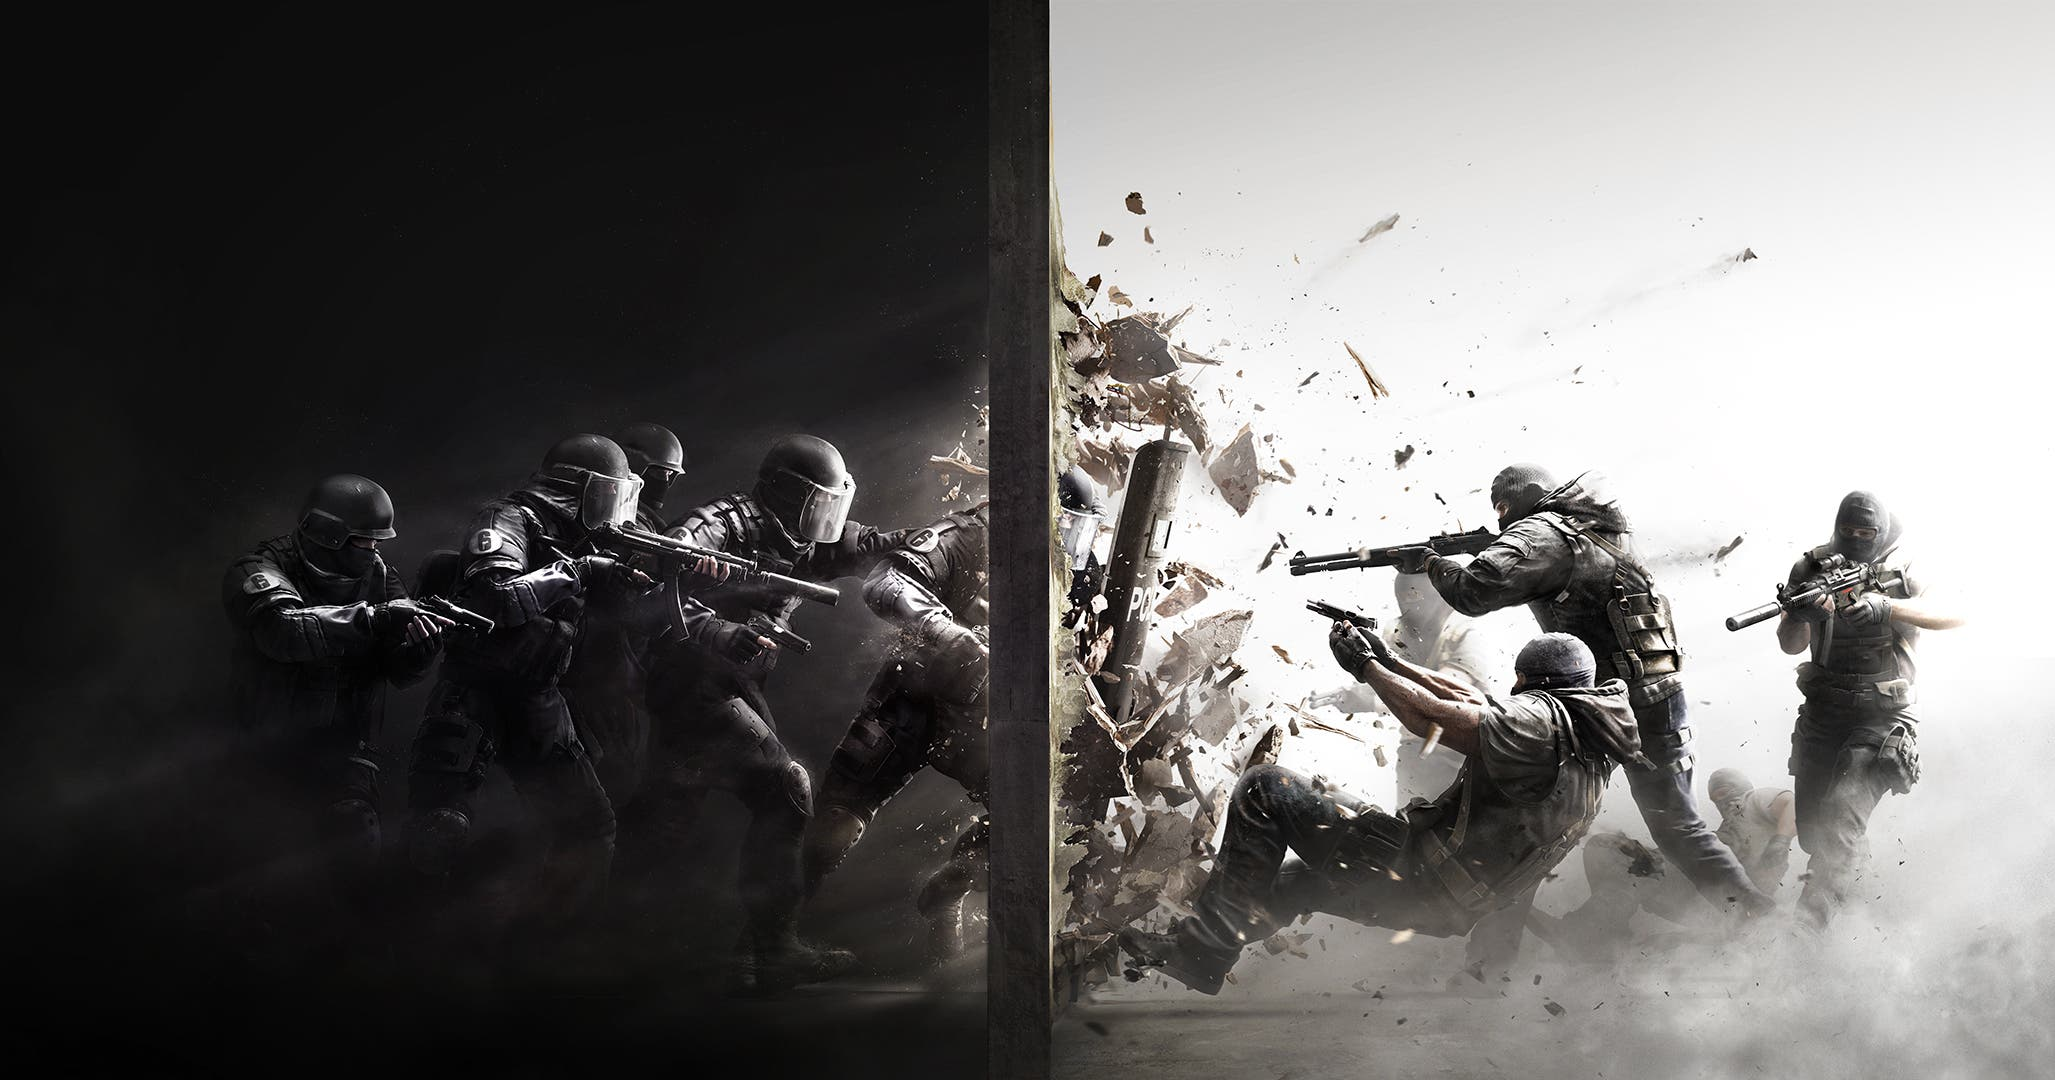 R6S featured